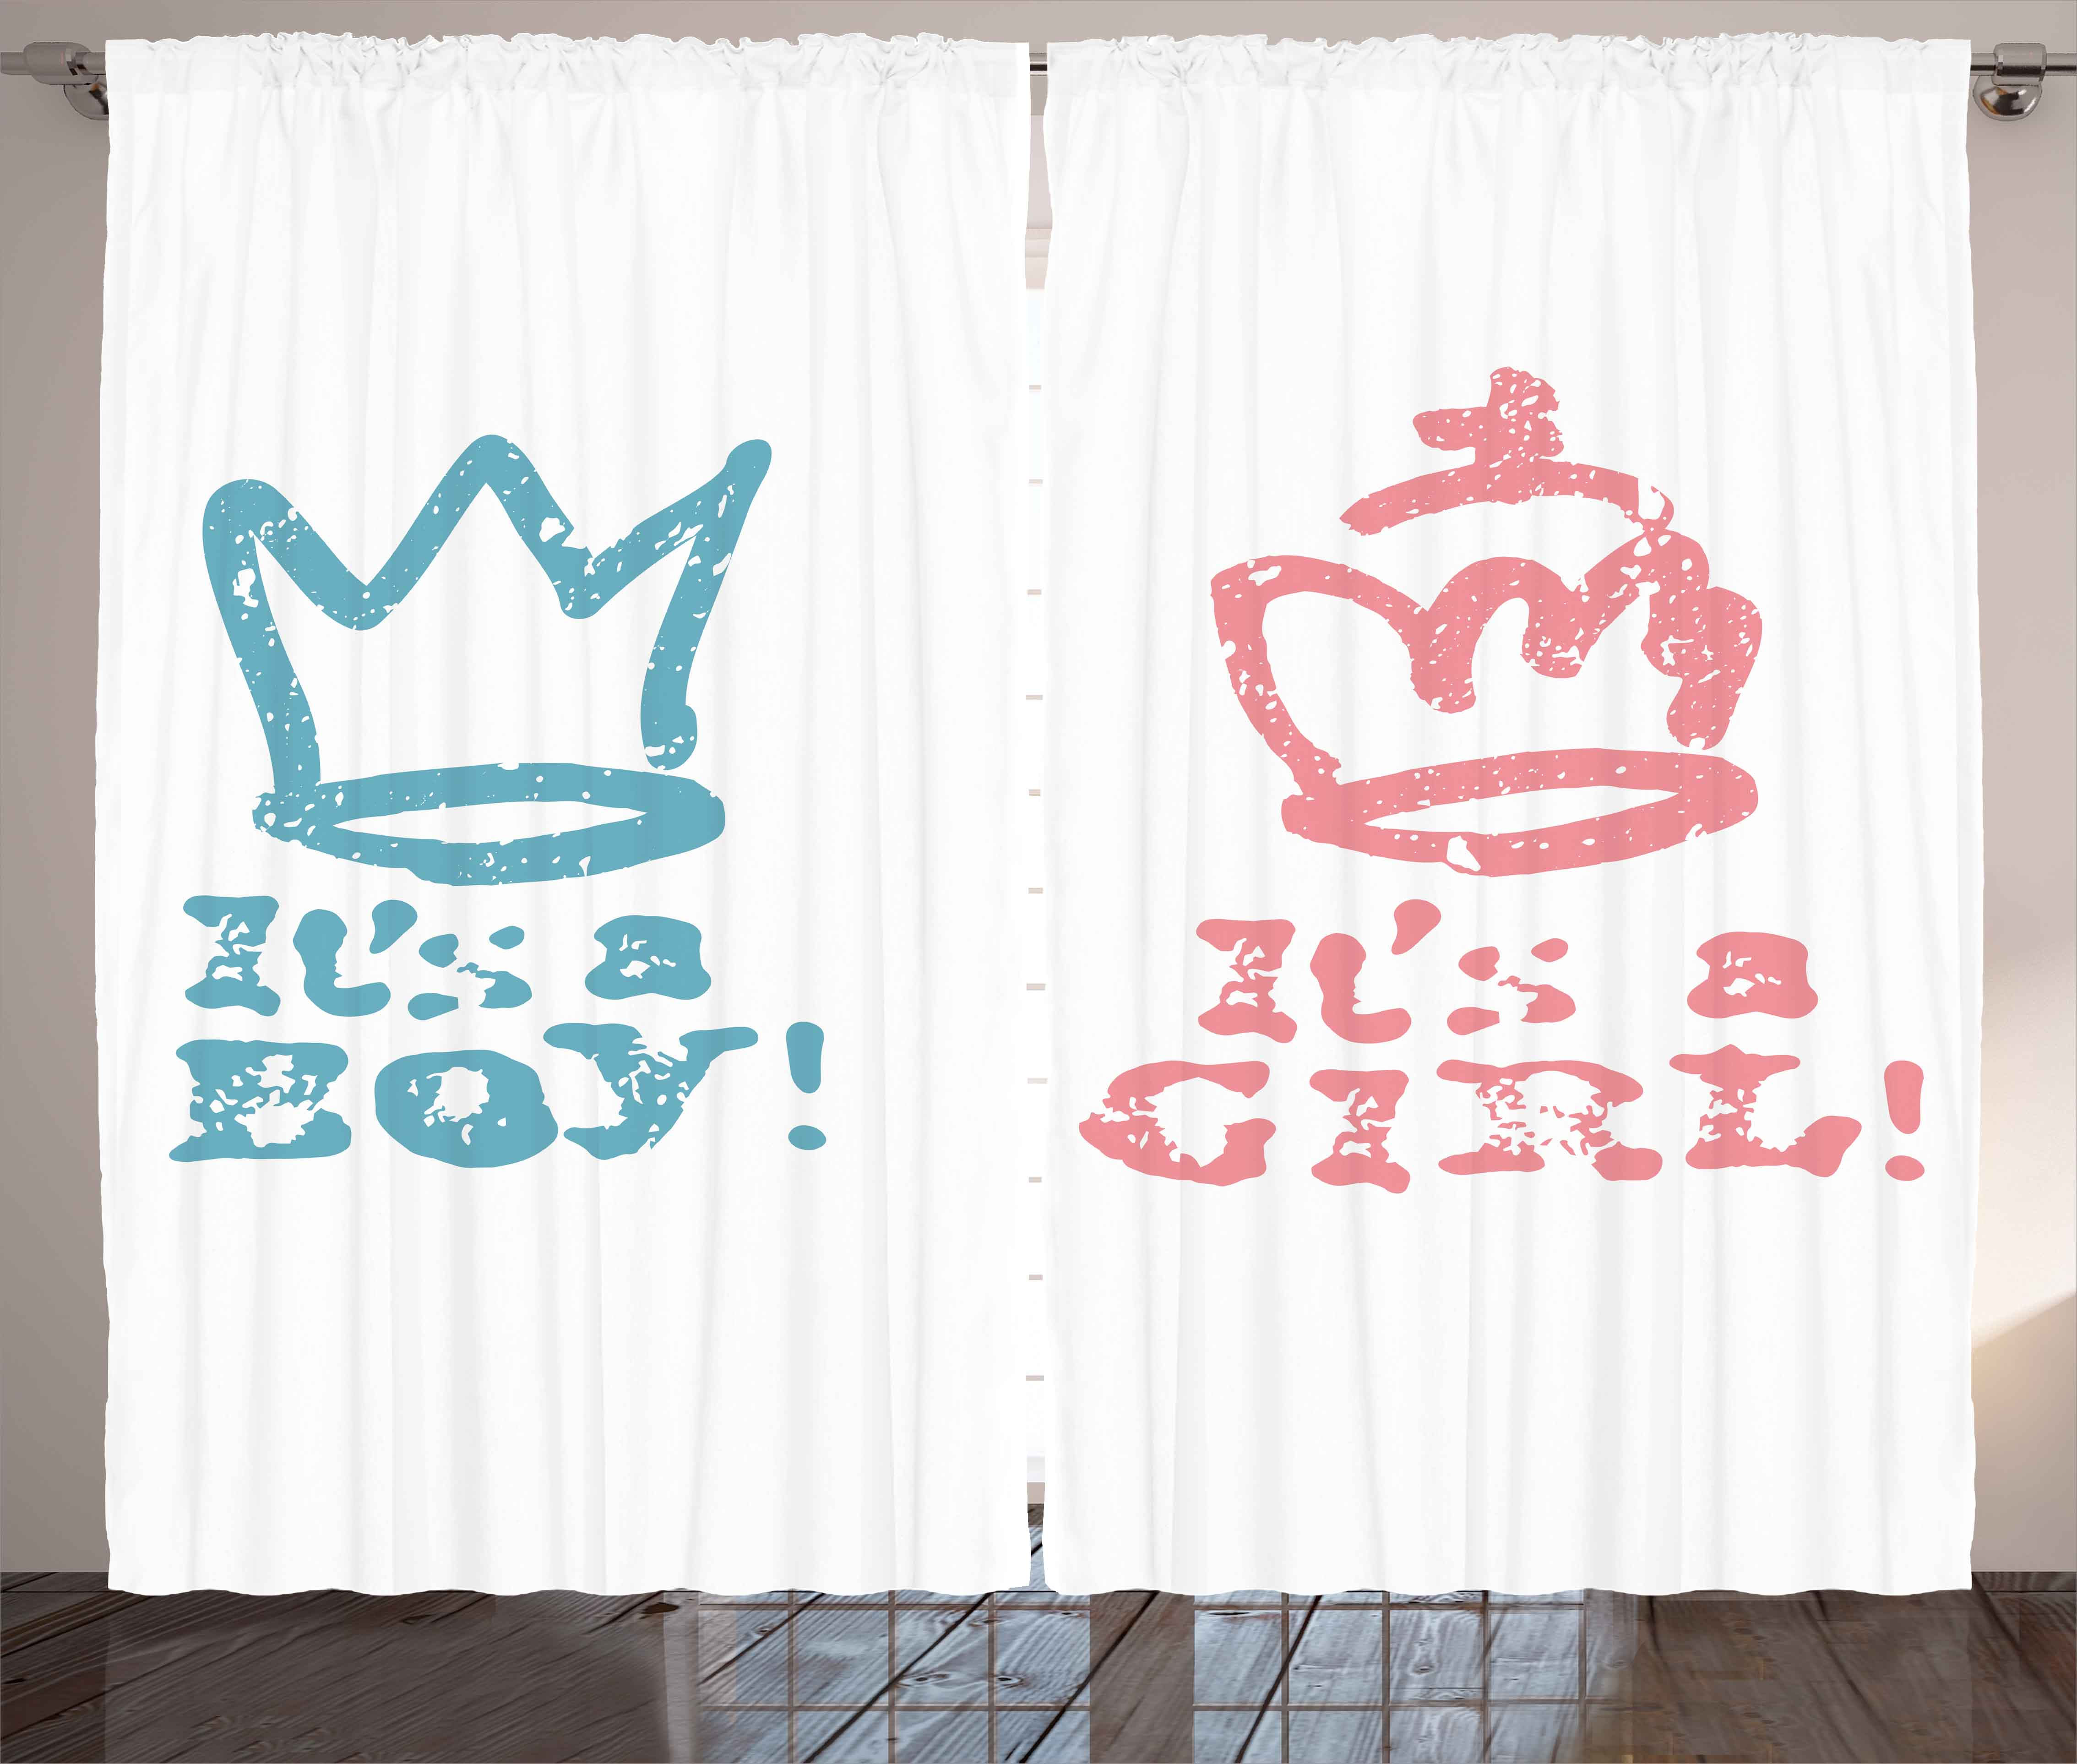 Gender Reveal Curtains 2 Panels Set Queen Boy King Crown In Pastel Colors Cute Children Kids Theme Window D For Living Room Bedroom